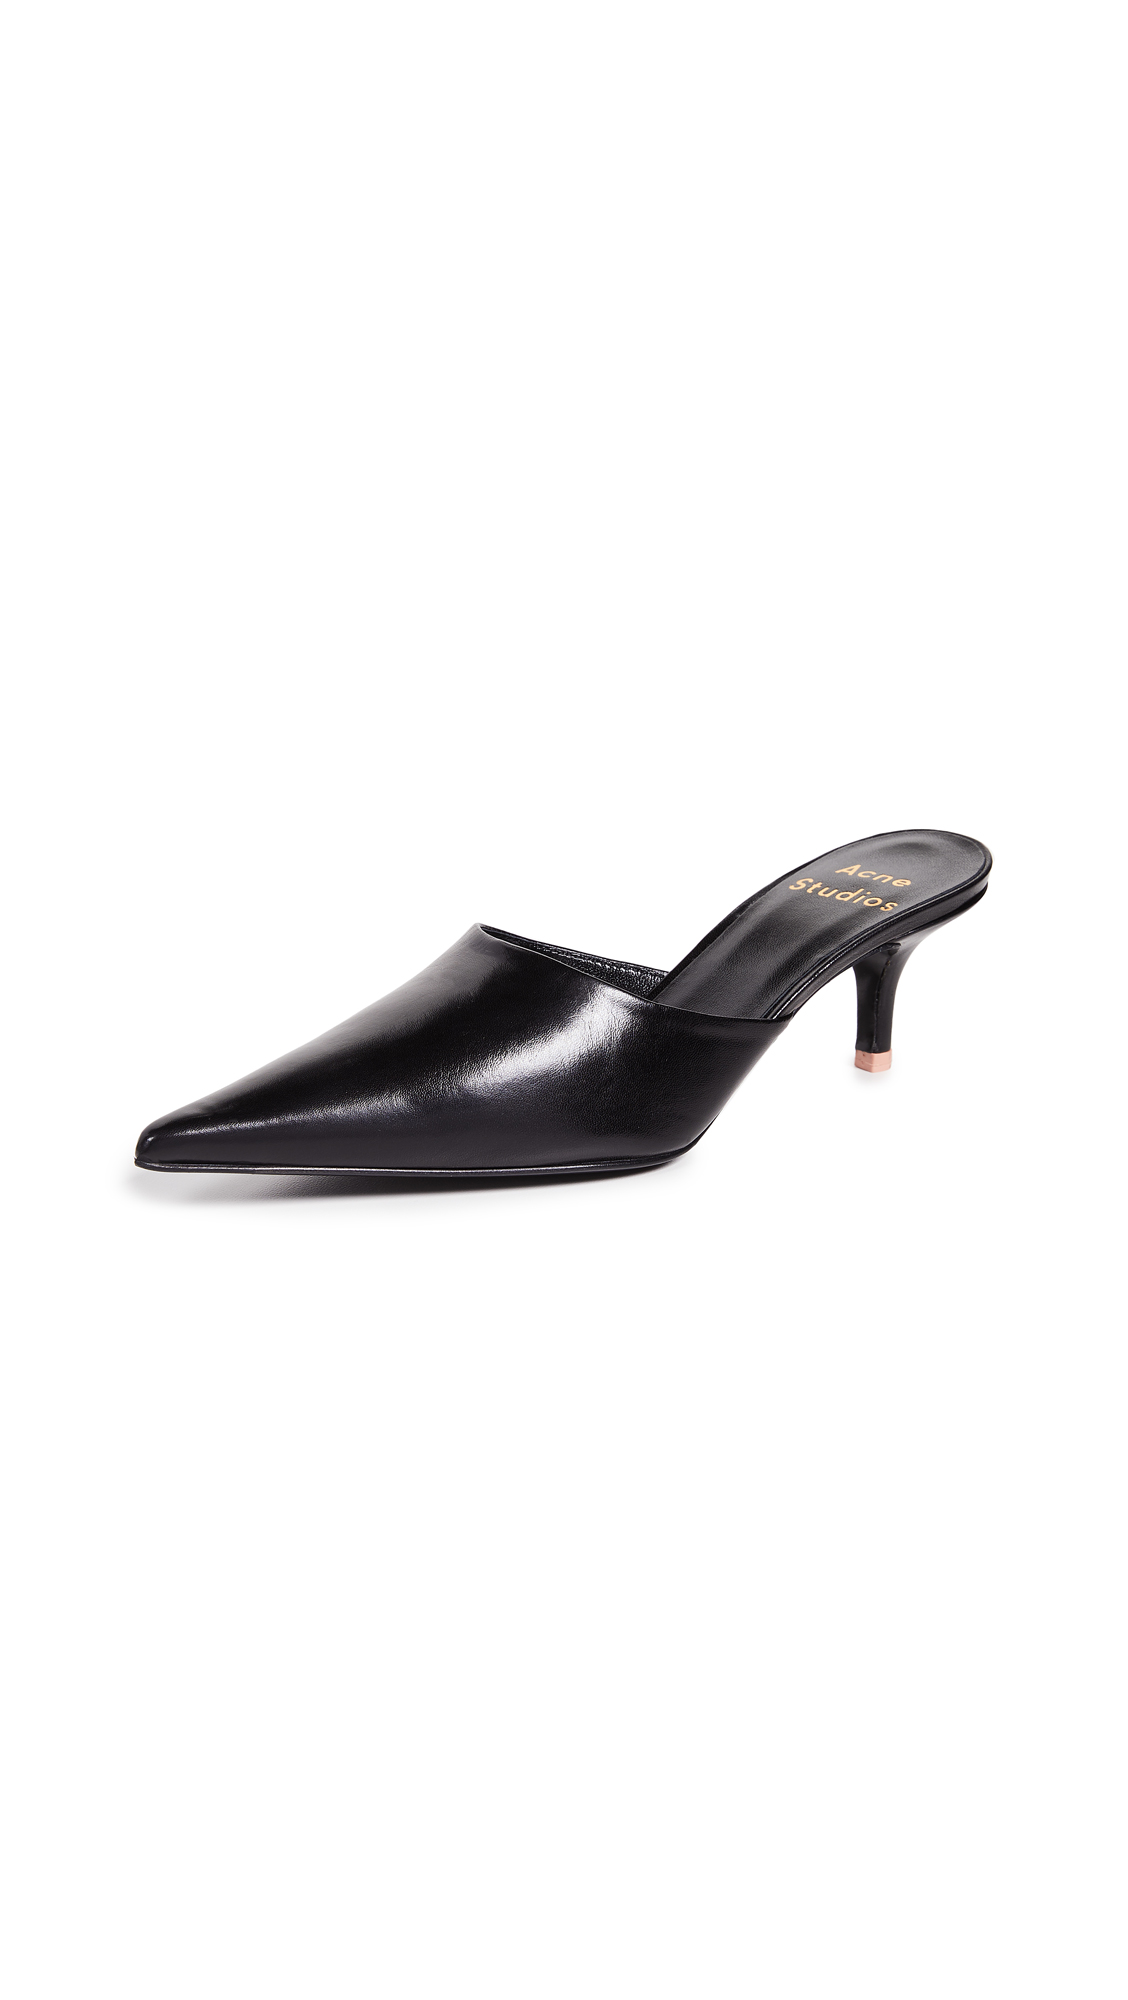 Acne Studios Mule Pumps - Black